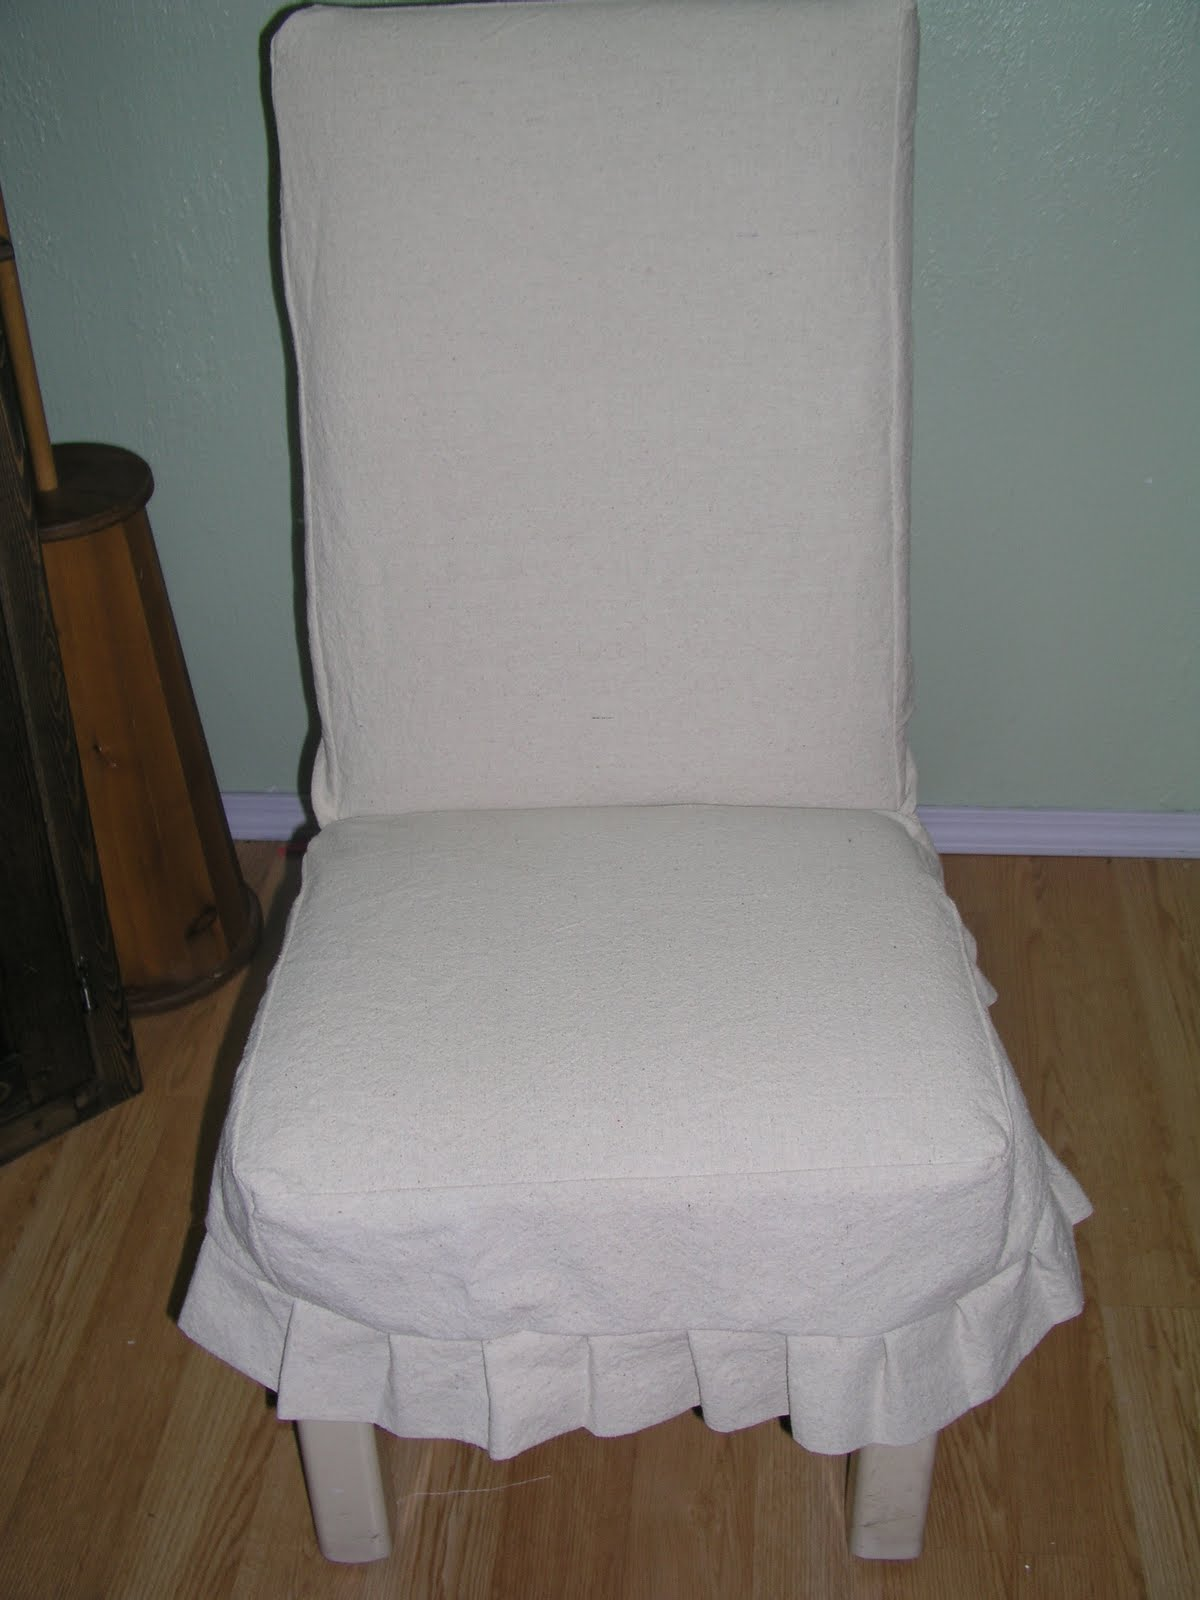 Diy Dining Room Chair Covers Lowes Cushions The Copper Tree Home Slipcover